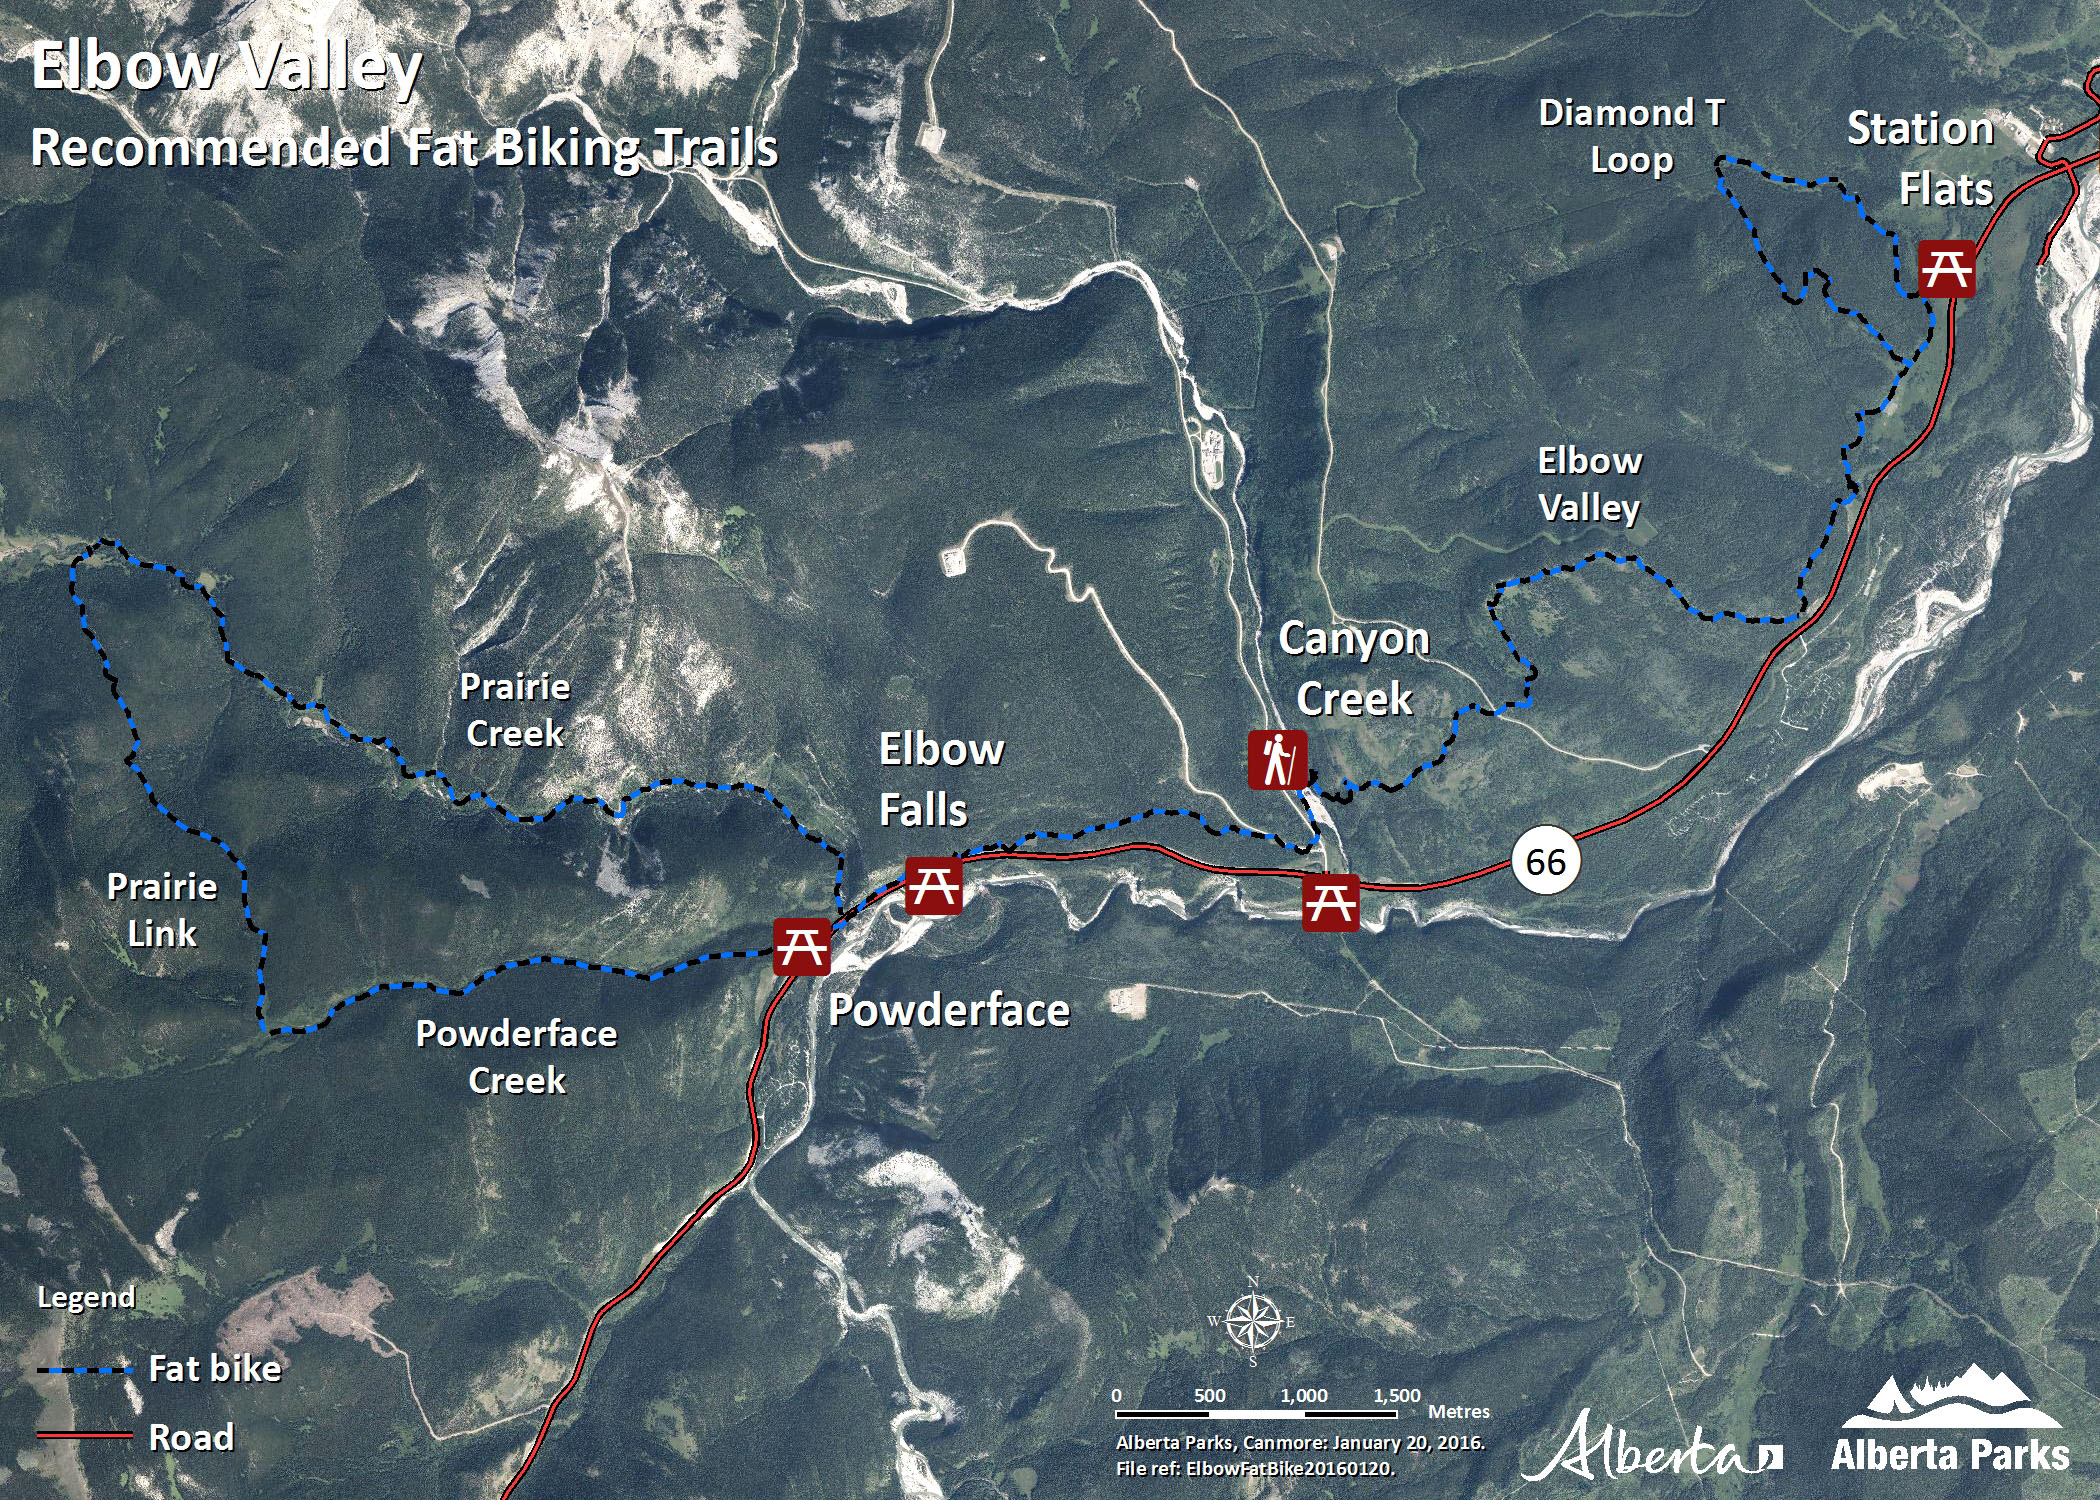 Kananaskis - Elbow Valley - Map of Fat Biking Trails